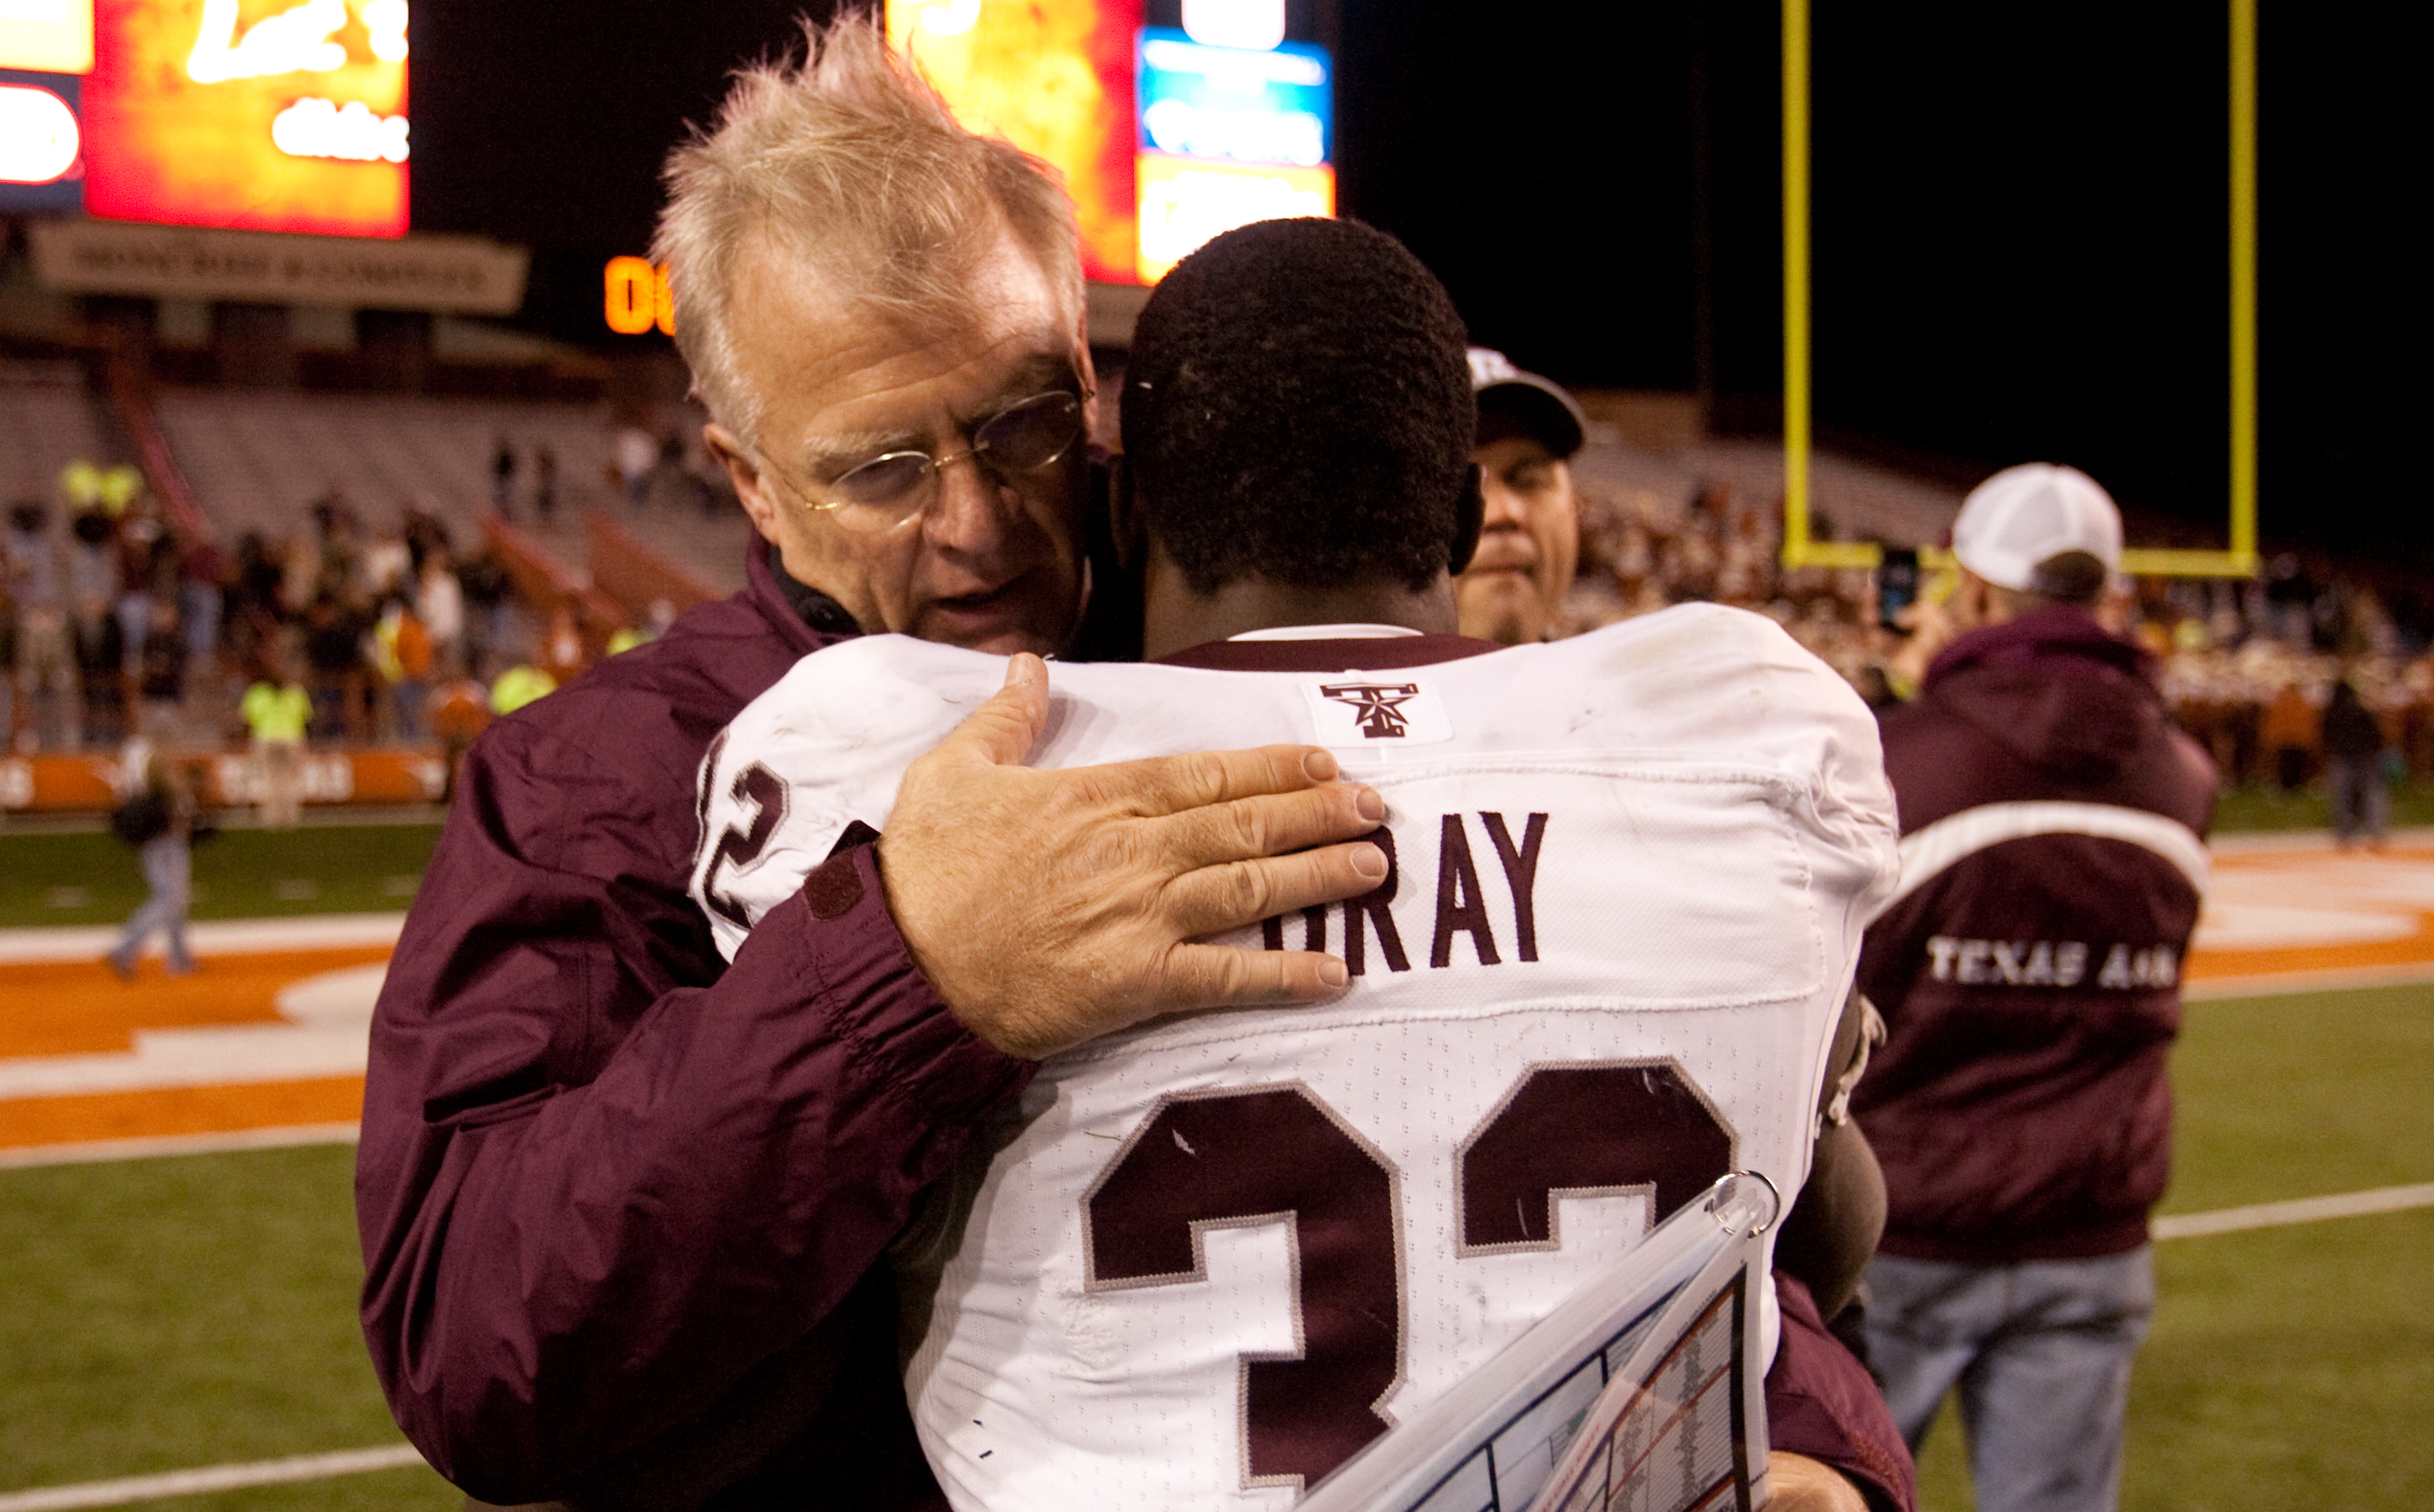 AUSTIN, TX - NOVEMBER 25:  Mike Sherman, head coach of Texas A&M, embraces running back Cyrus Gray #32 following Texas A&M's 24-17 win over The University of Texas at Darrell K. Royal-Texas Memorial Stadium on November 25, 2010 in Austin, Texas. (Photo by